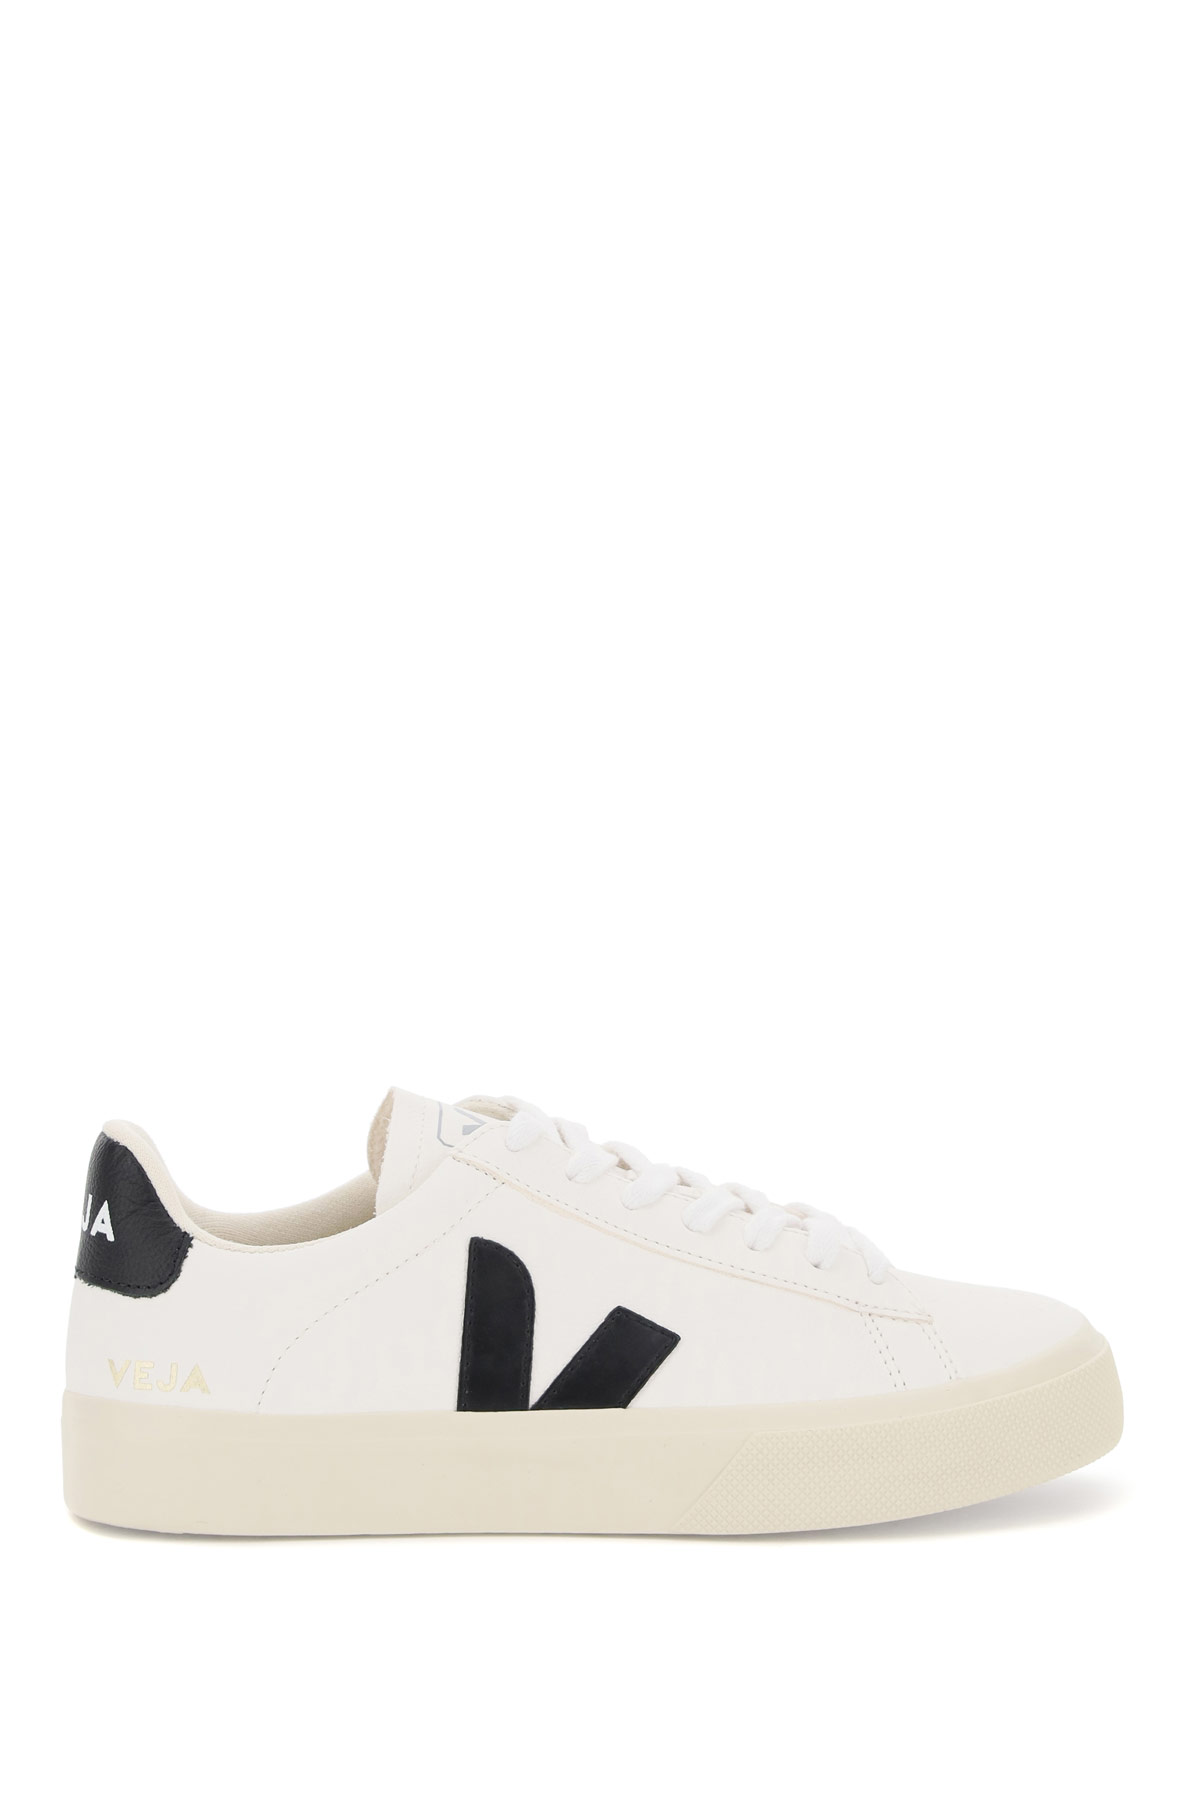 VEJA CAMPO CHROMEFREE LEATHER SNEAKERS 44 White, Black Leather